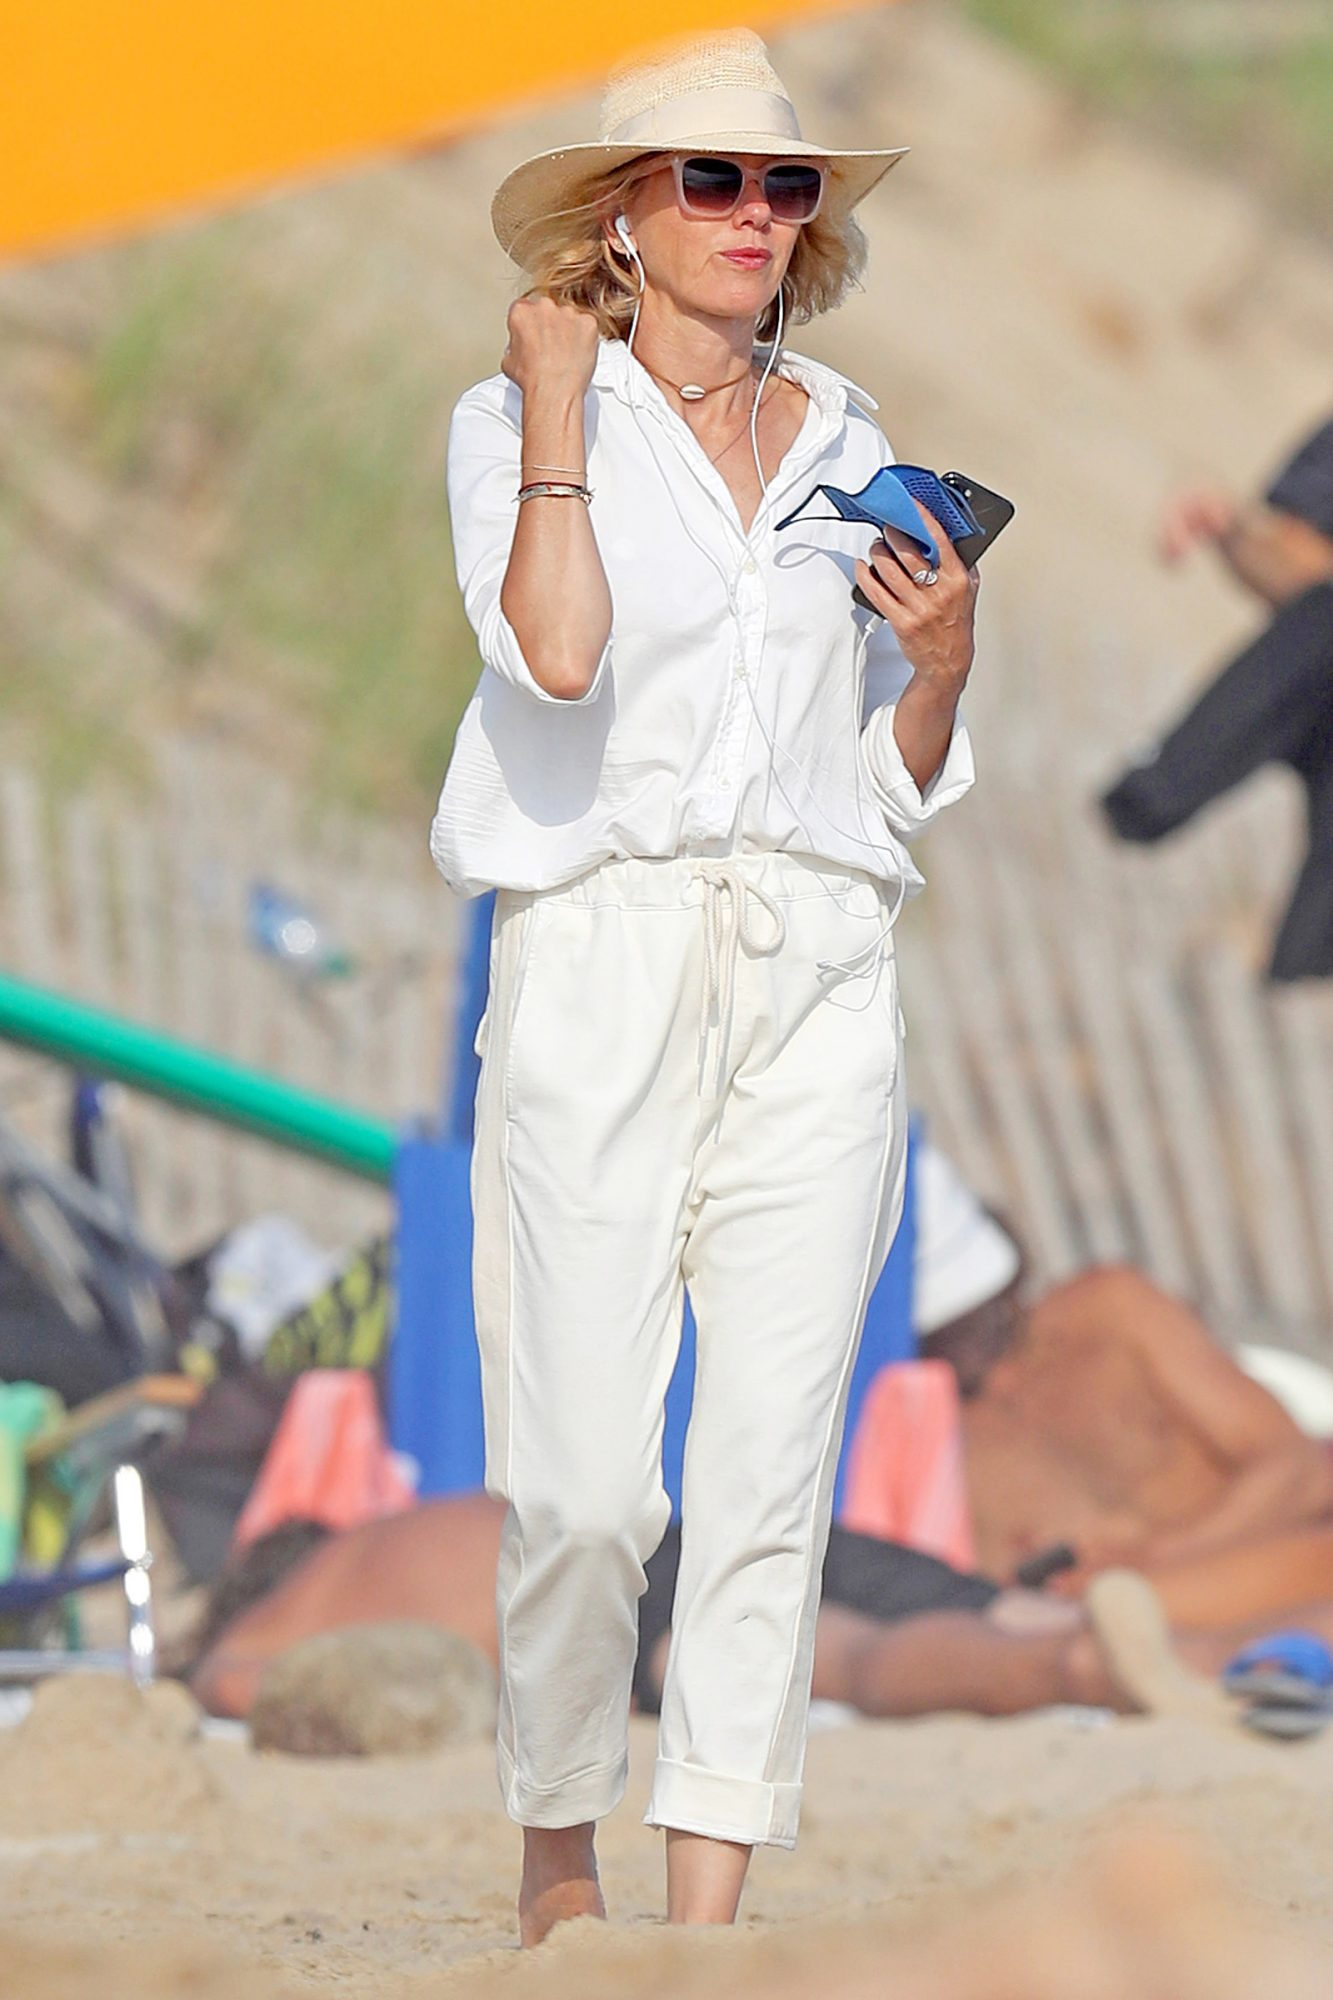 Naomi Watts Hits The Beach With Some Takeout Food in The Hamptons.